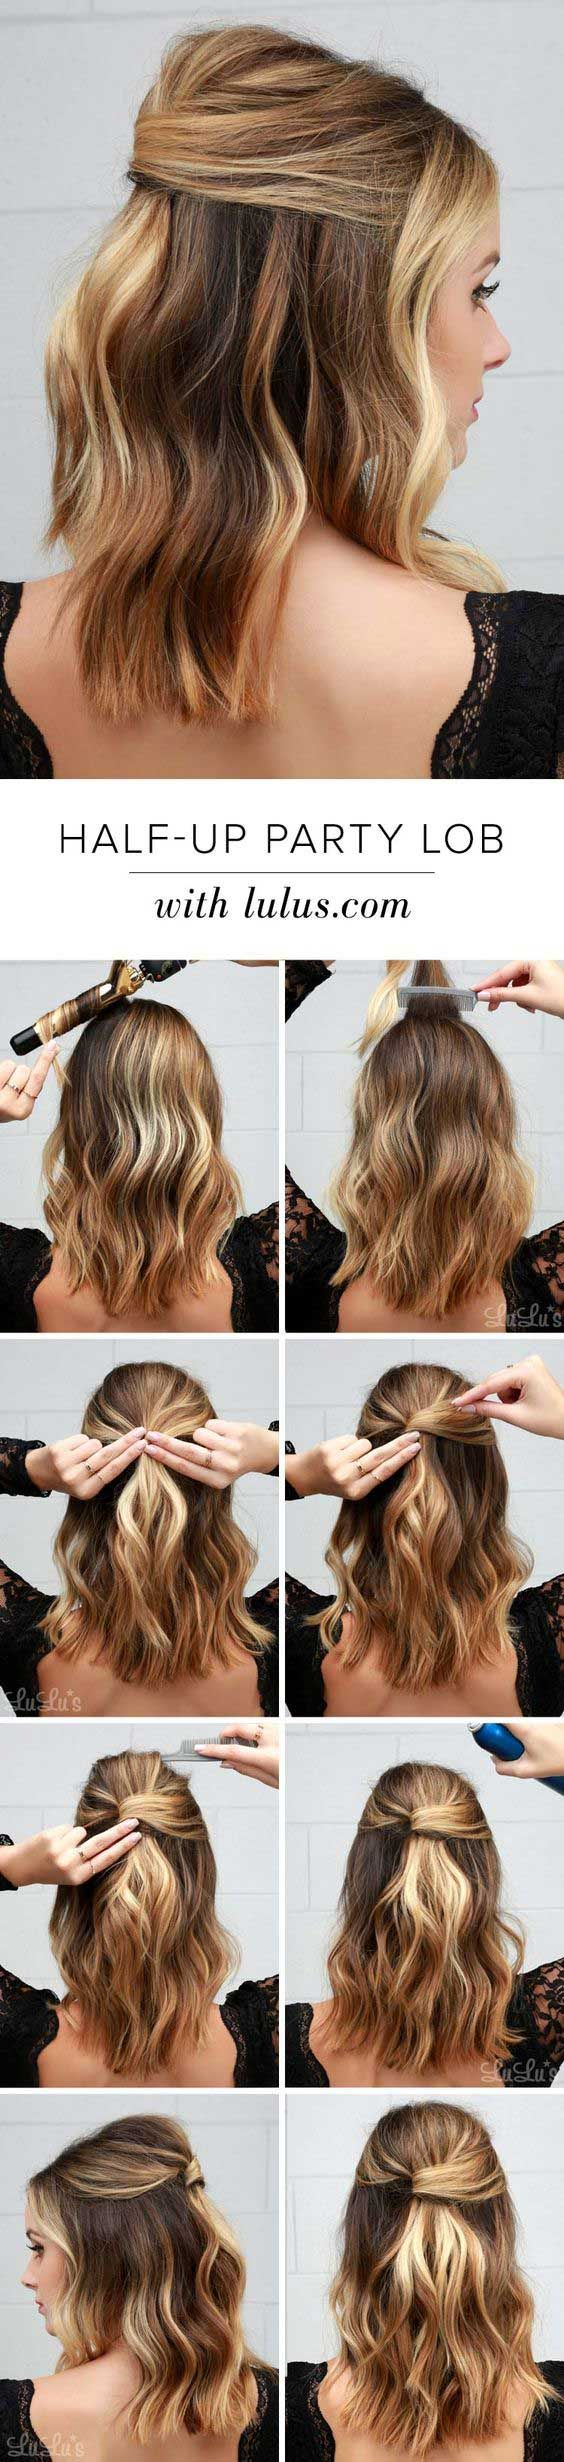 18 Half Up Half Down Hairstyle Tutorials Perfect For Prom Hair